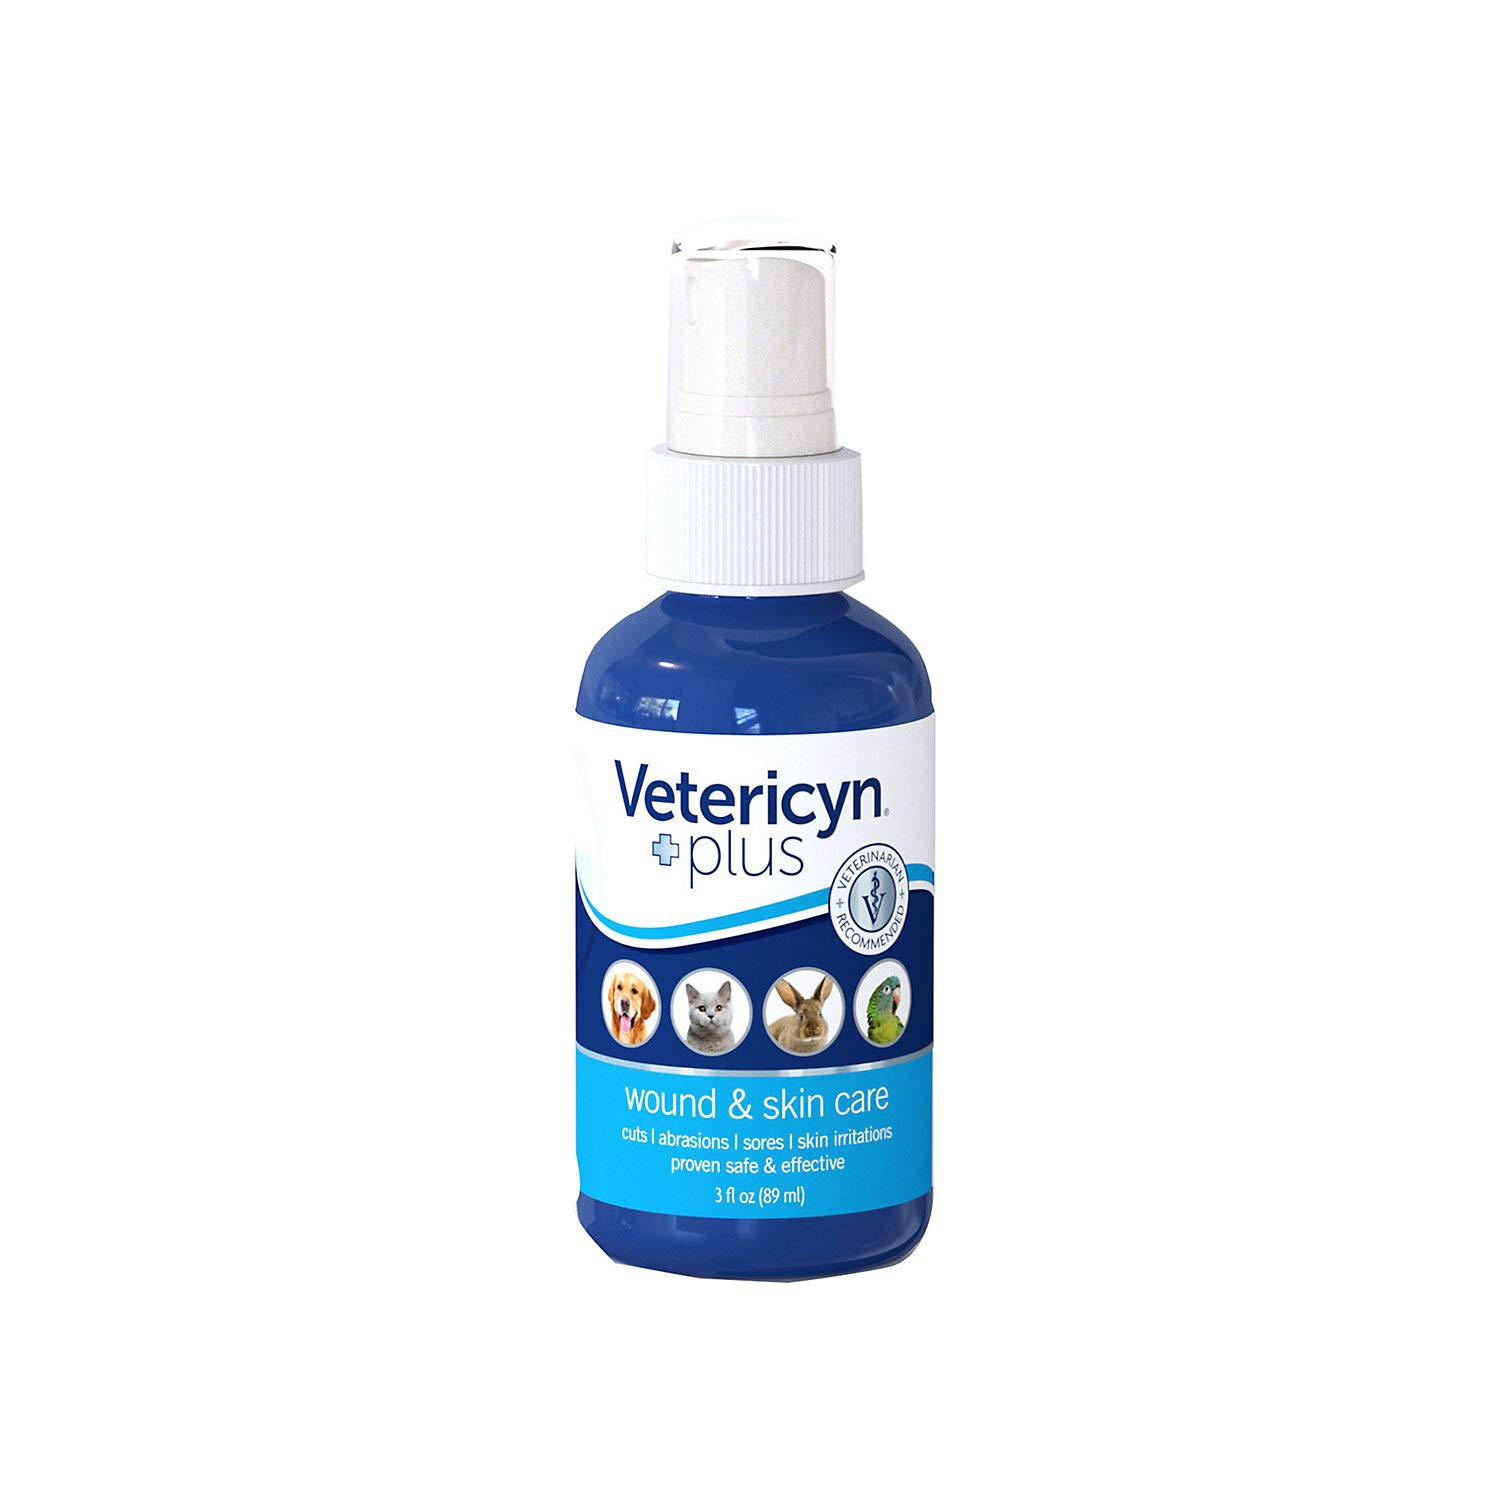 Vetericyn Plus Antimicrobial Wound and Skin Care. Spray to Clean Cuts and Wounds. Itch and Irritation Relief. No… – The Cat Site